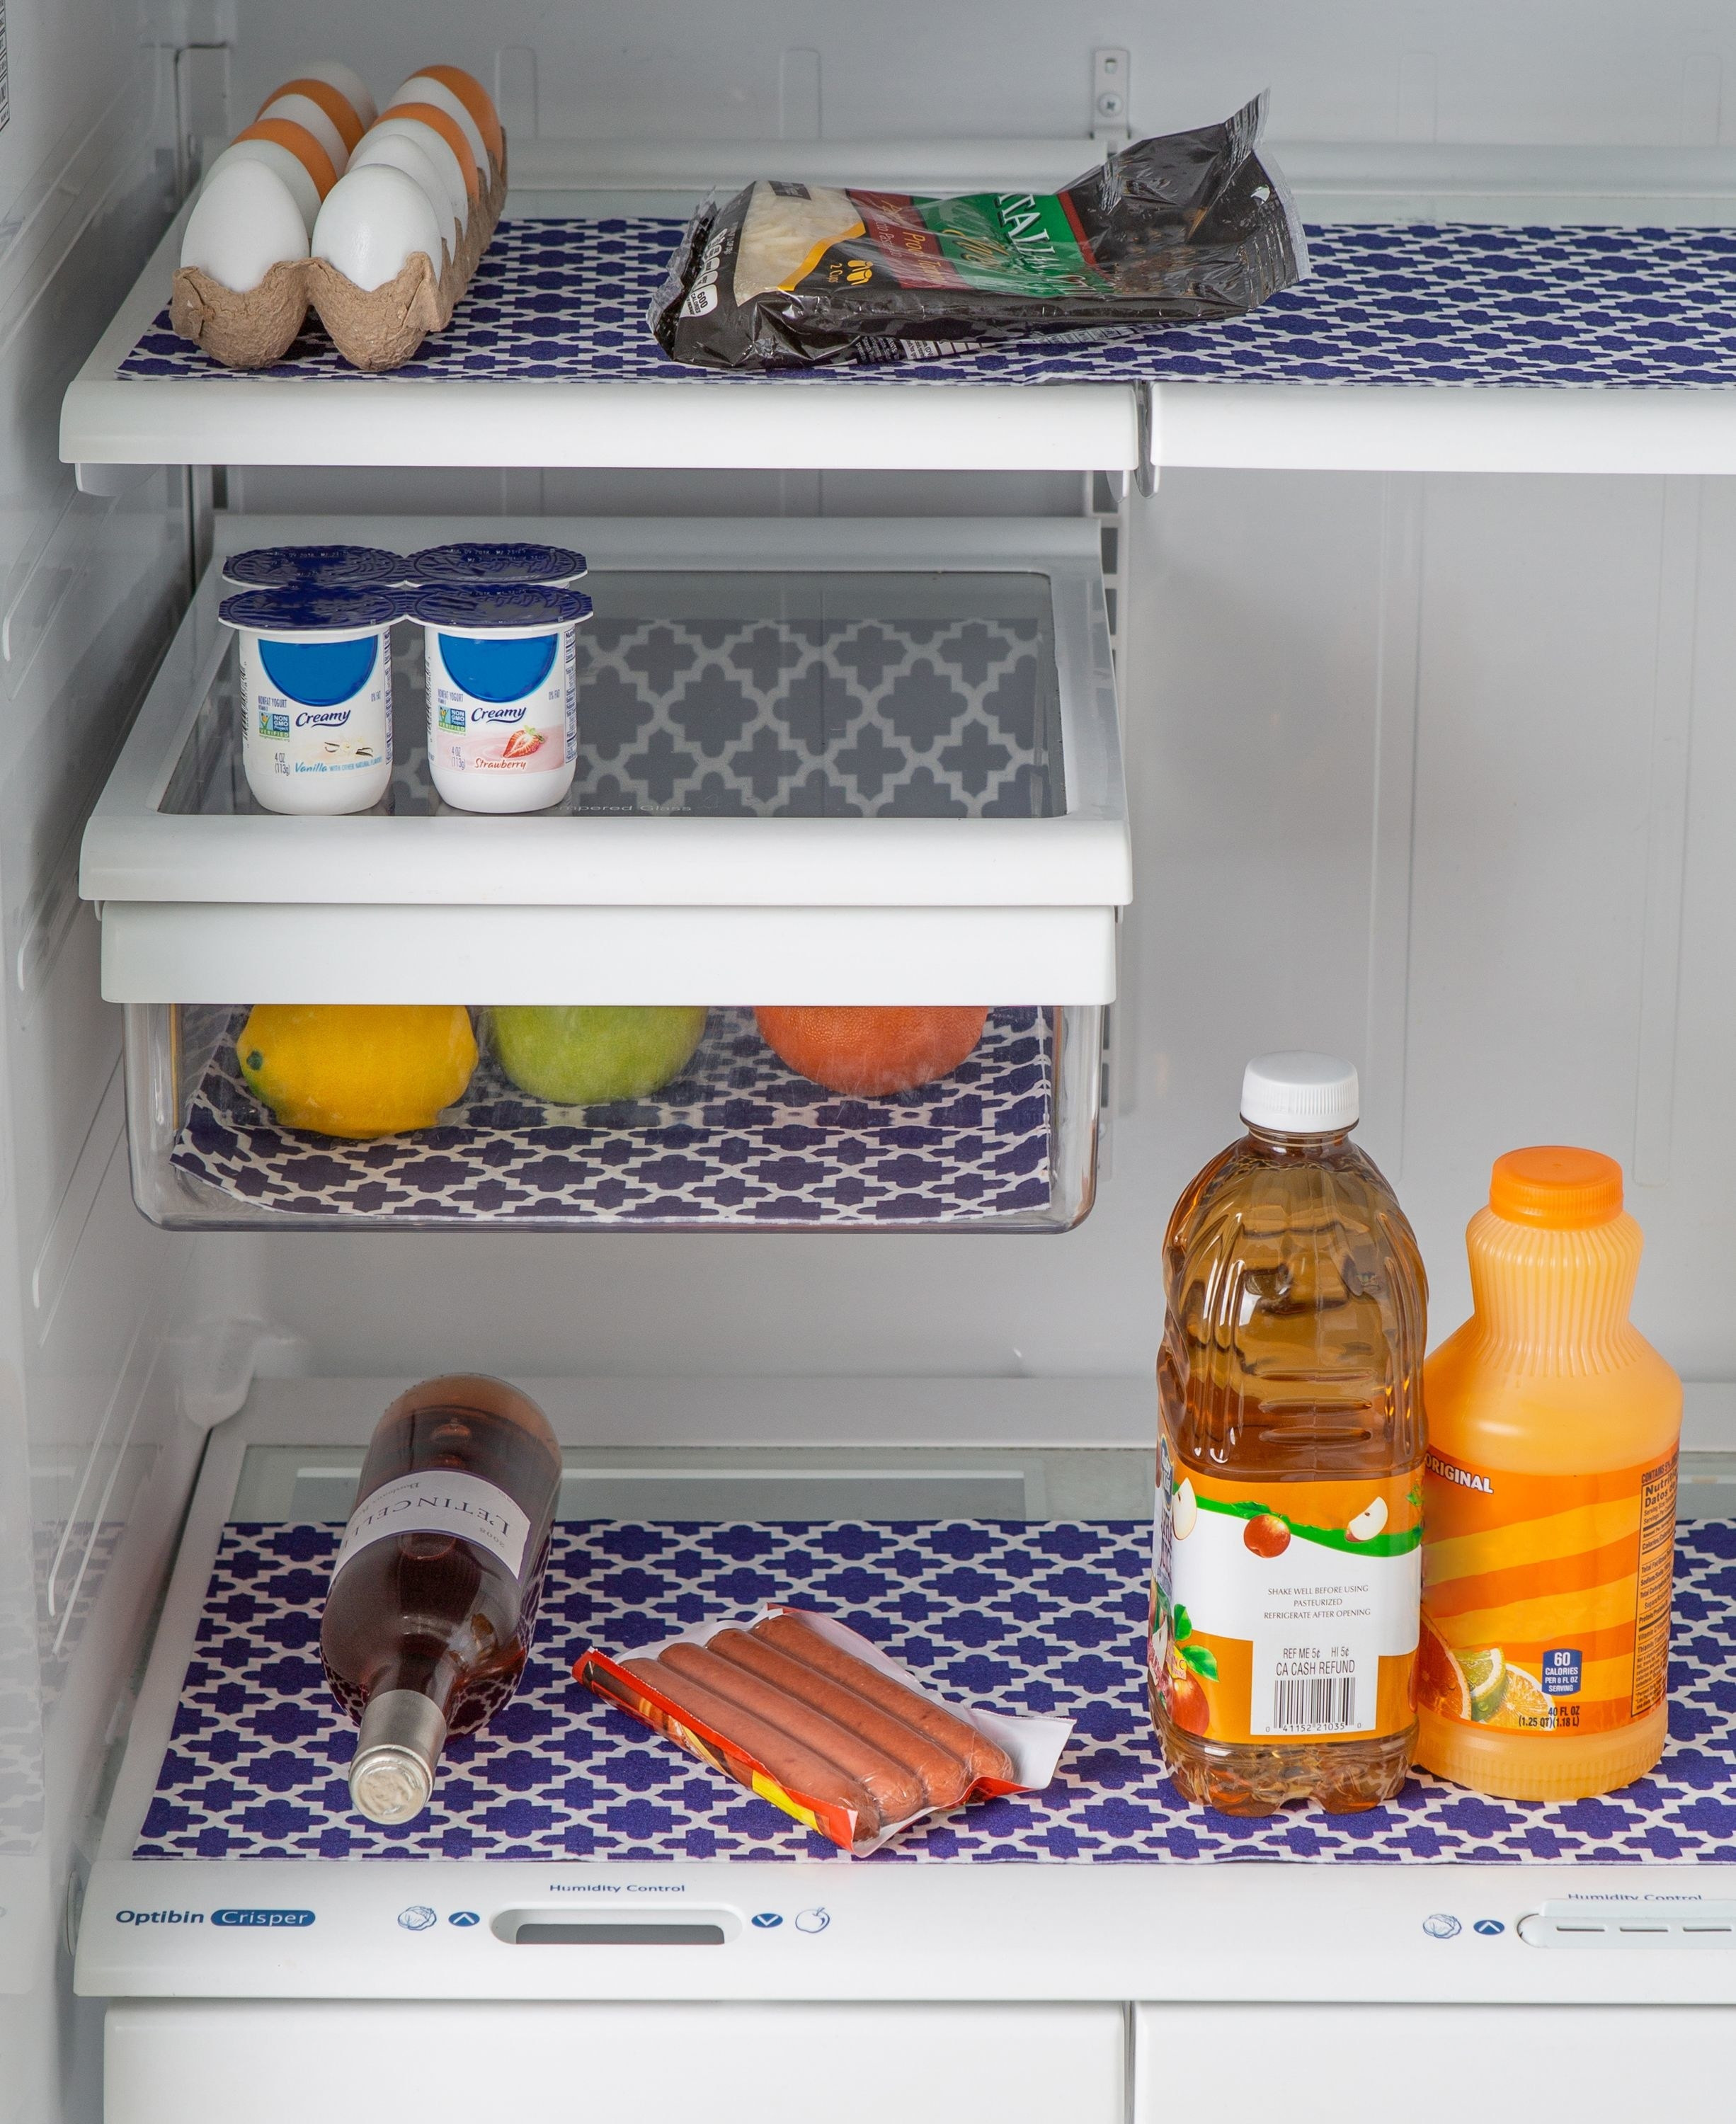 Refrigerator with blue lattice shelf liners